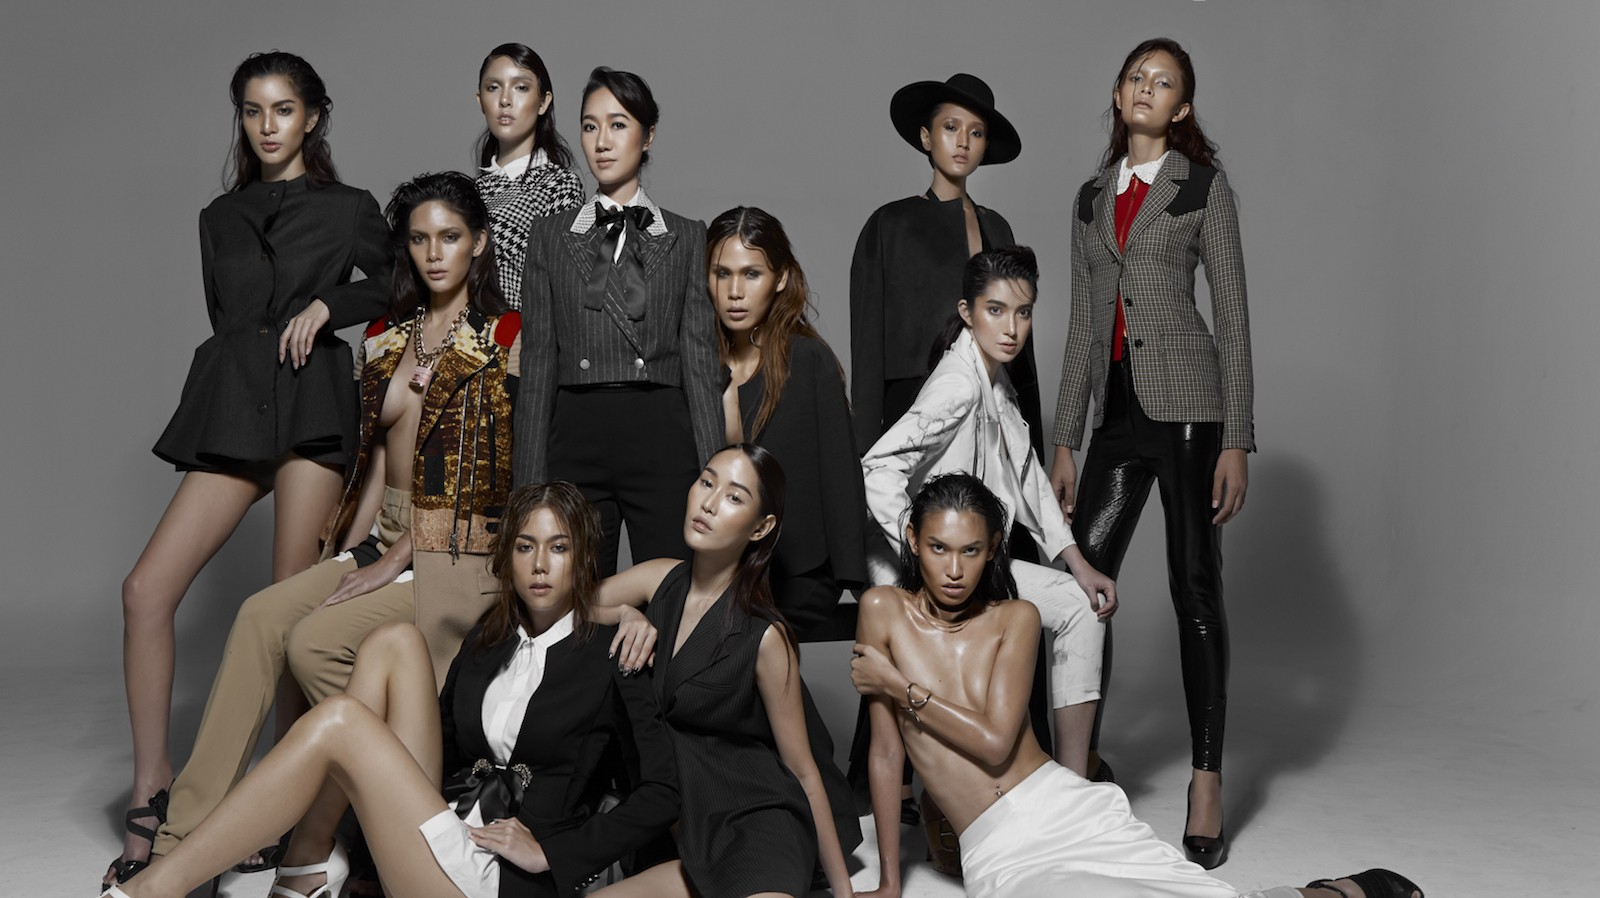 Inside the World's First Modeling Agency with a Trans-Only Division